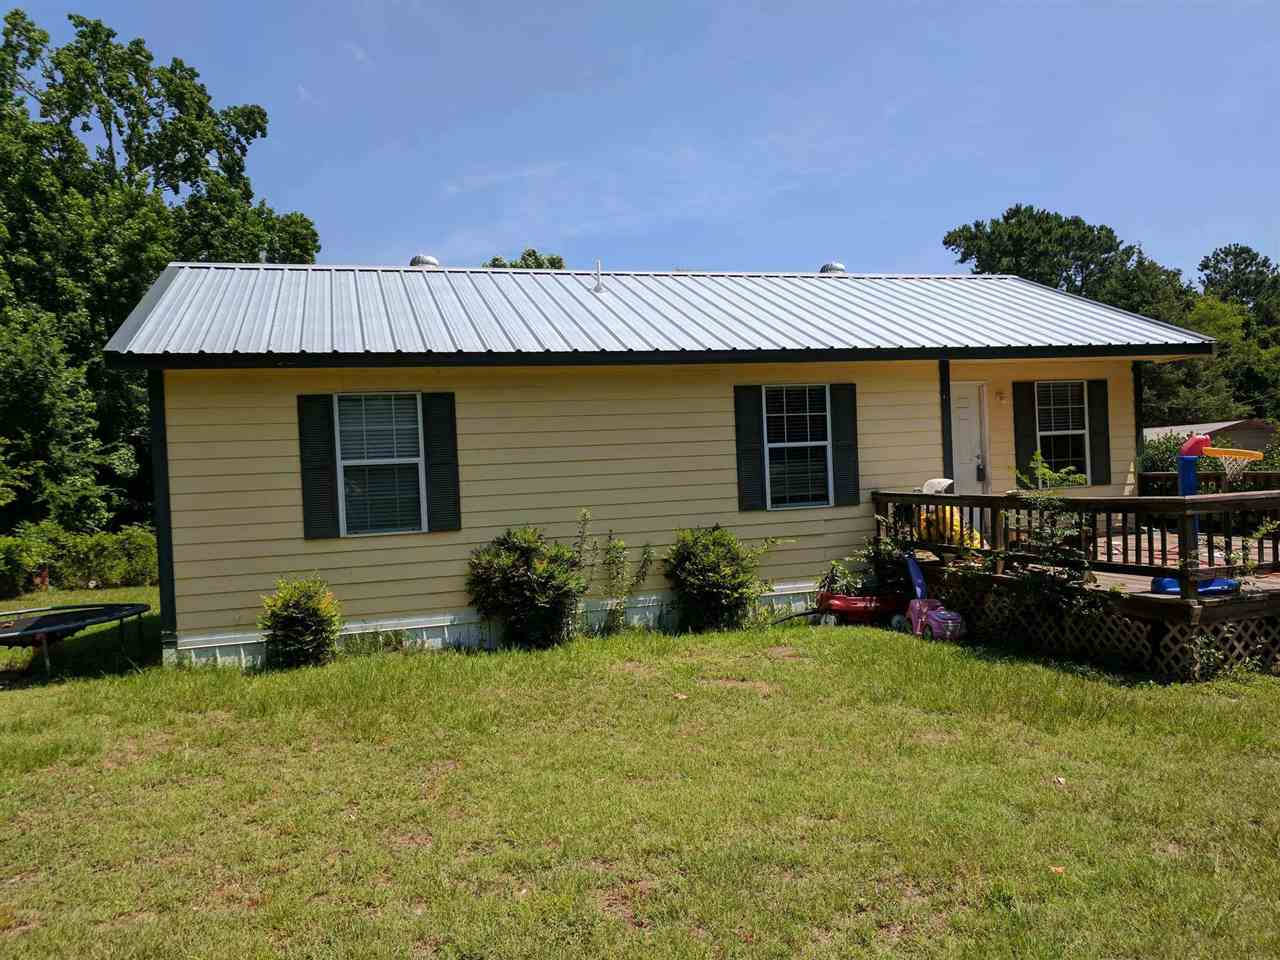 Great starter home, investment property, or retirement spot in Gilmer on 1 ACRE!! Cute and Charming 3 bedroom 2 bath home with nice vinyl flooring, large deck out front perfect for relaxing with the family or enjoying your evenings outside, great kitchen counters w/modern looking backsplash, metal roof, and more! Won't Last Long!